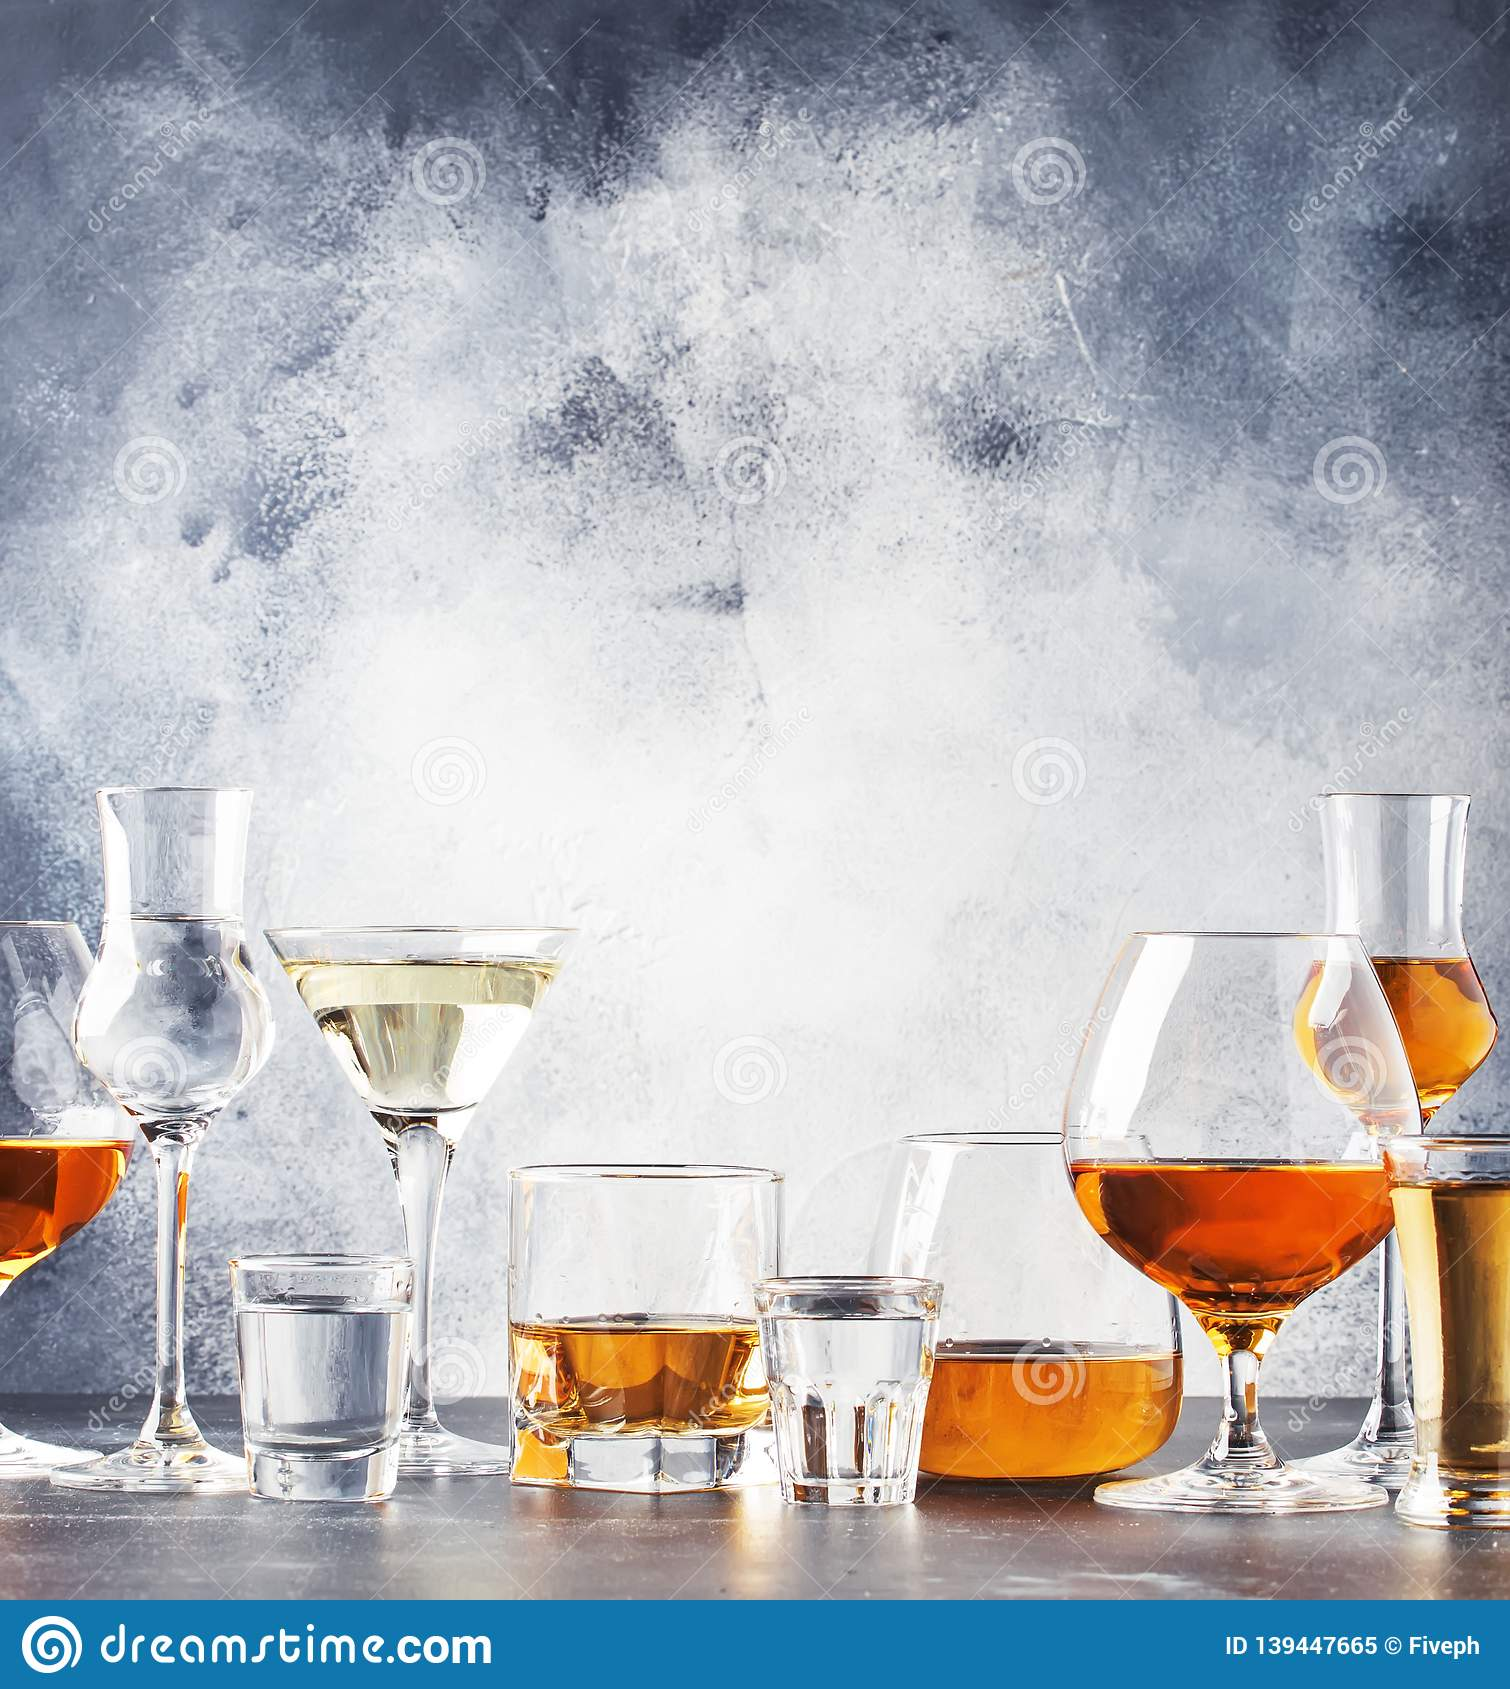 Selection Of Hard Strong Alcoholic Drinks In Big Glasses